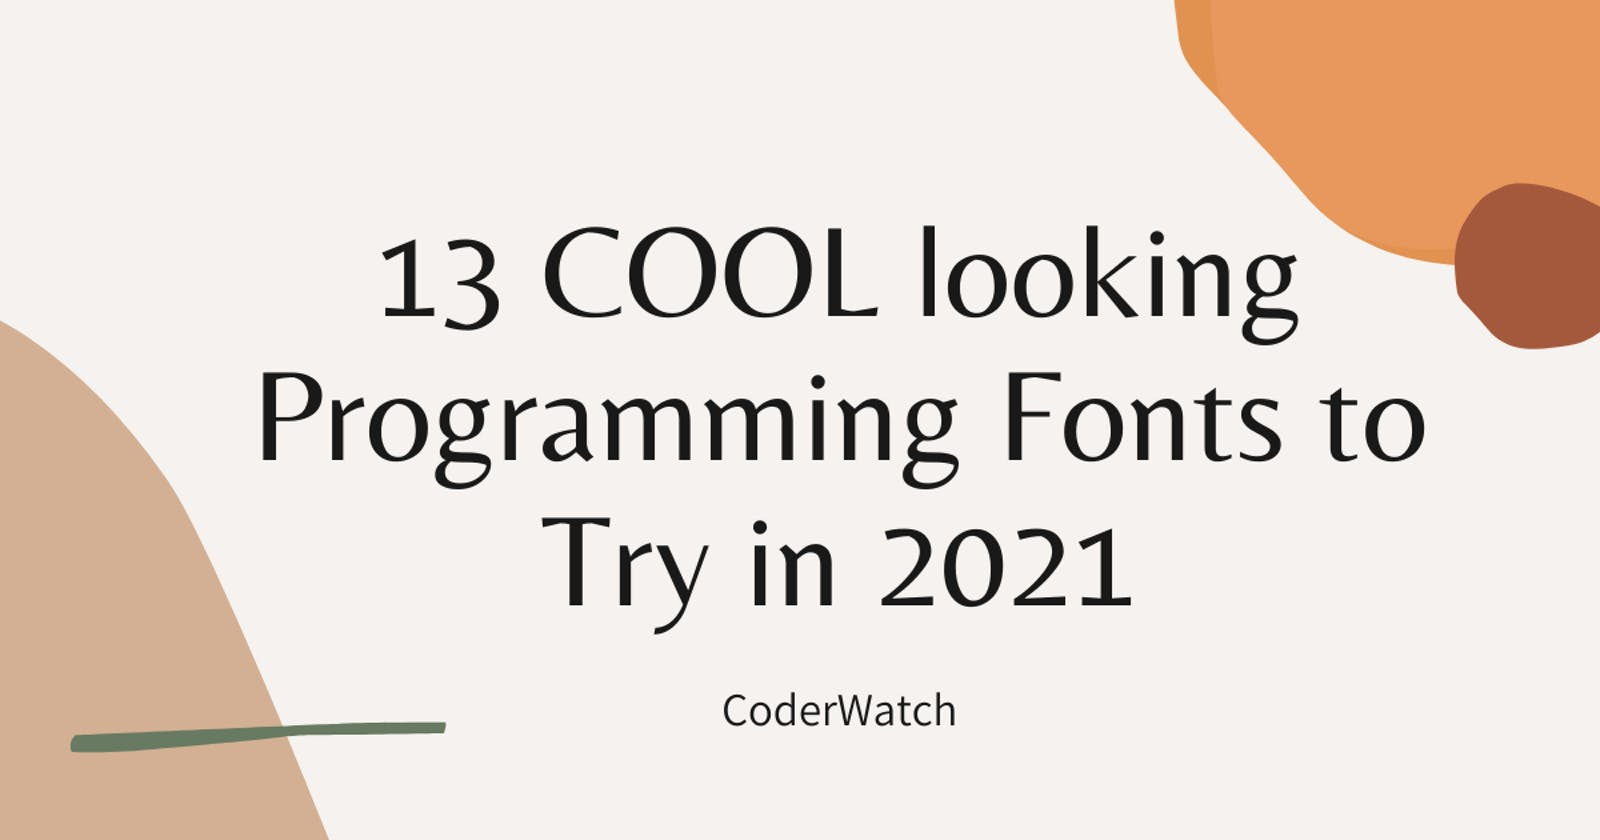 13 Cool looking programming Fonts in 2021